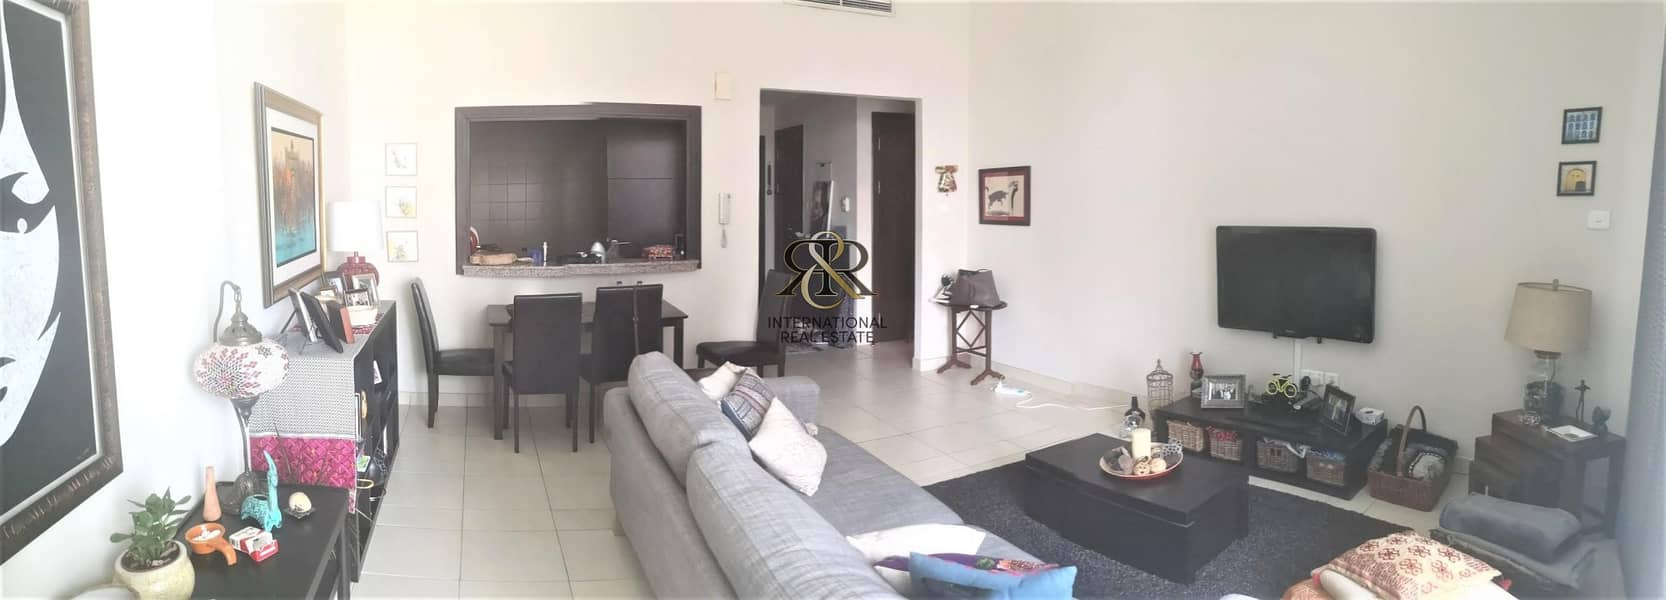 2 Spacious 1 Bedroom with Balcony | Partial Marina View